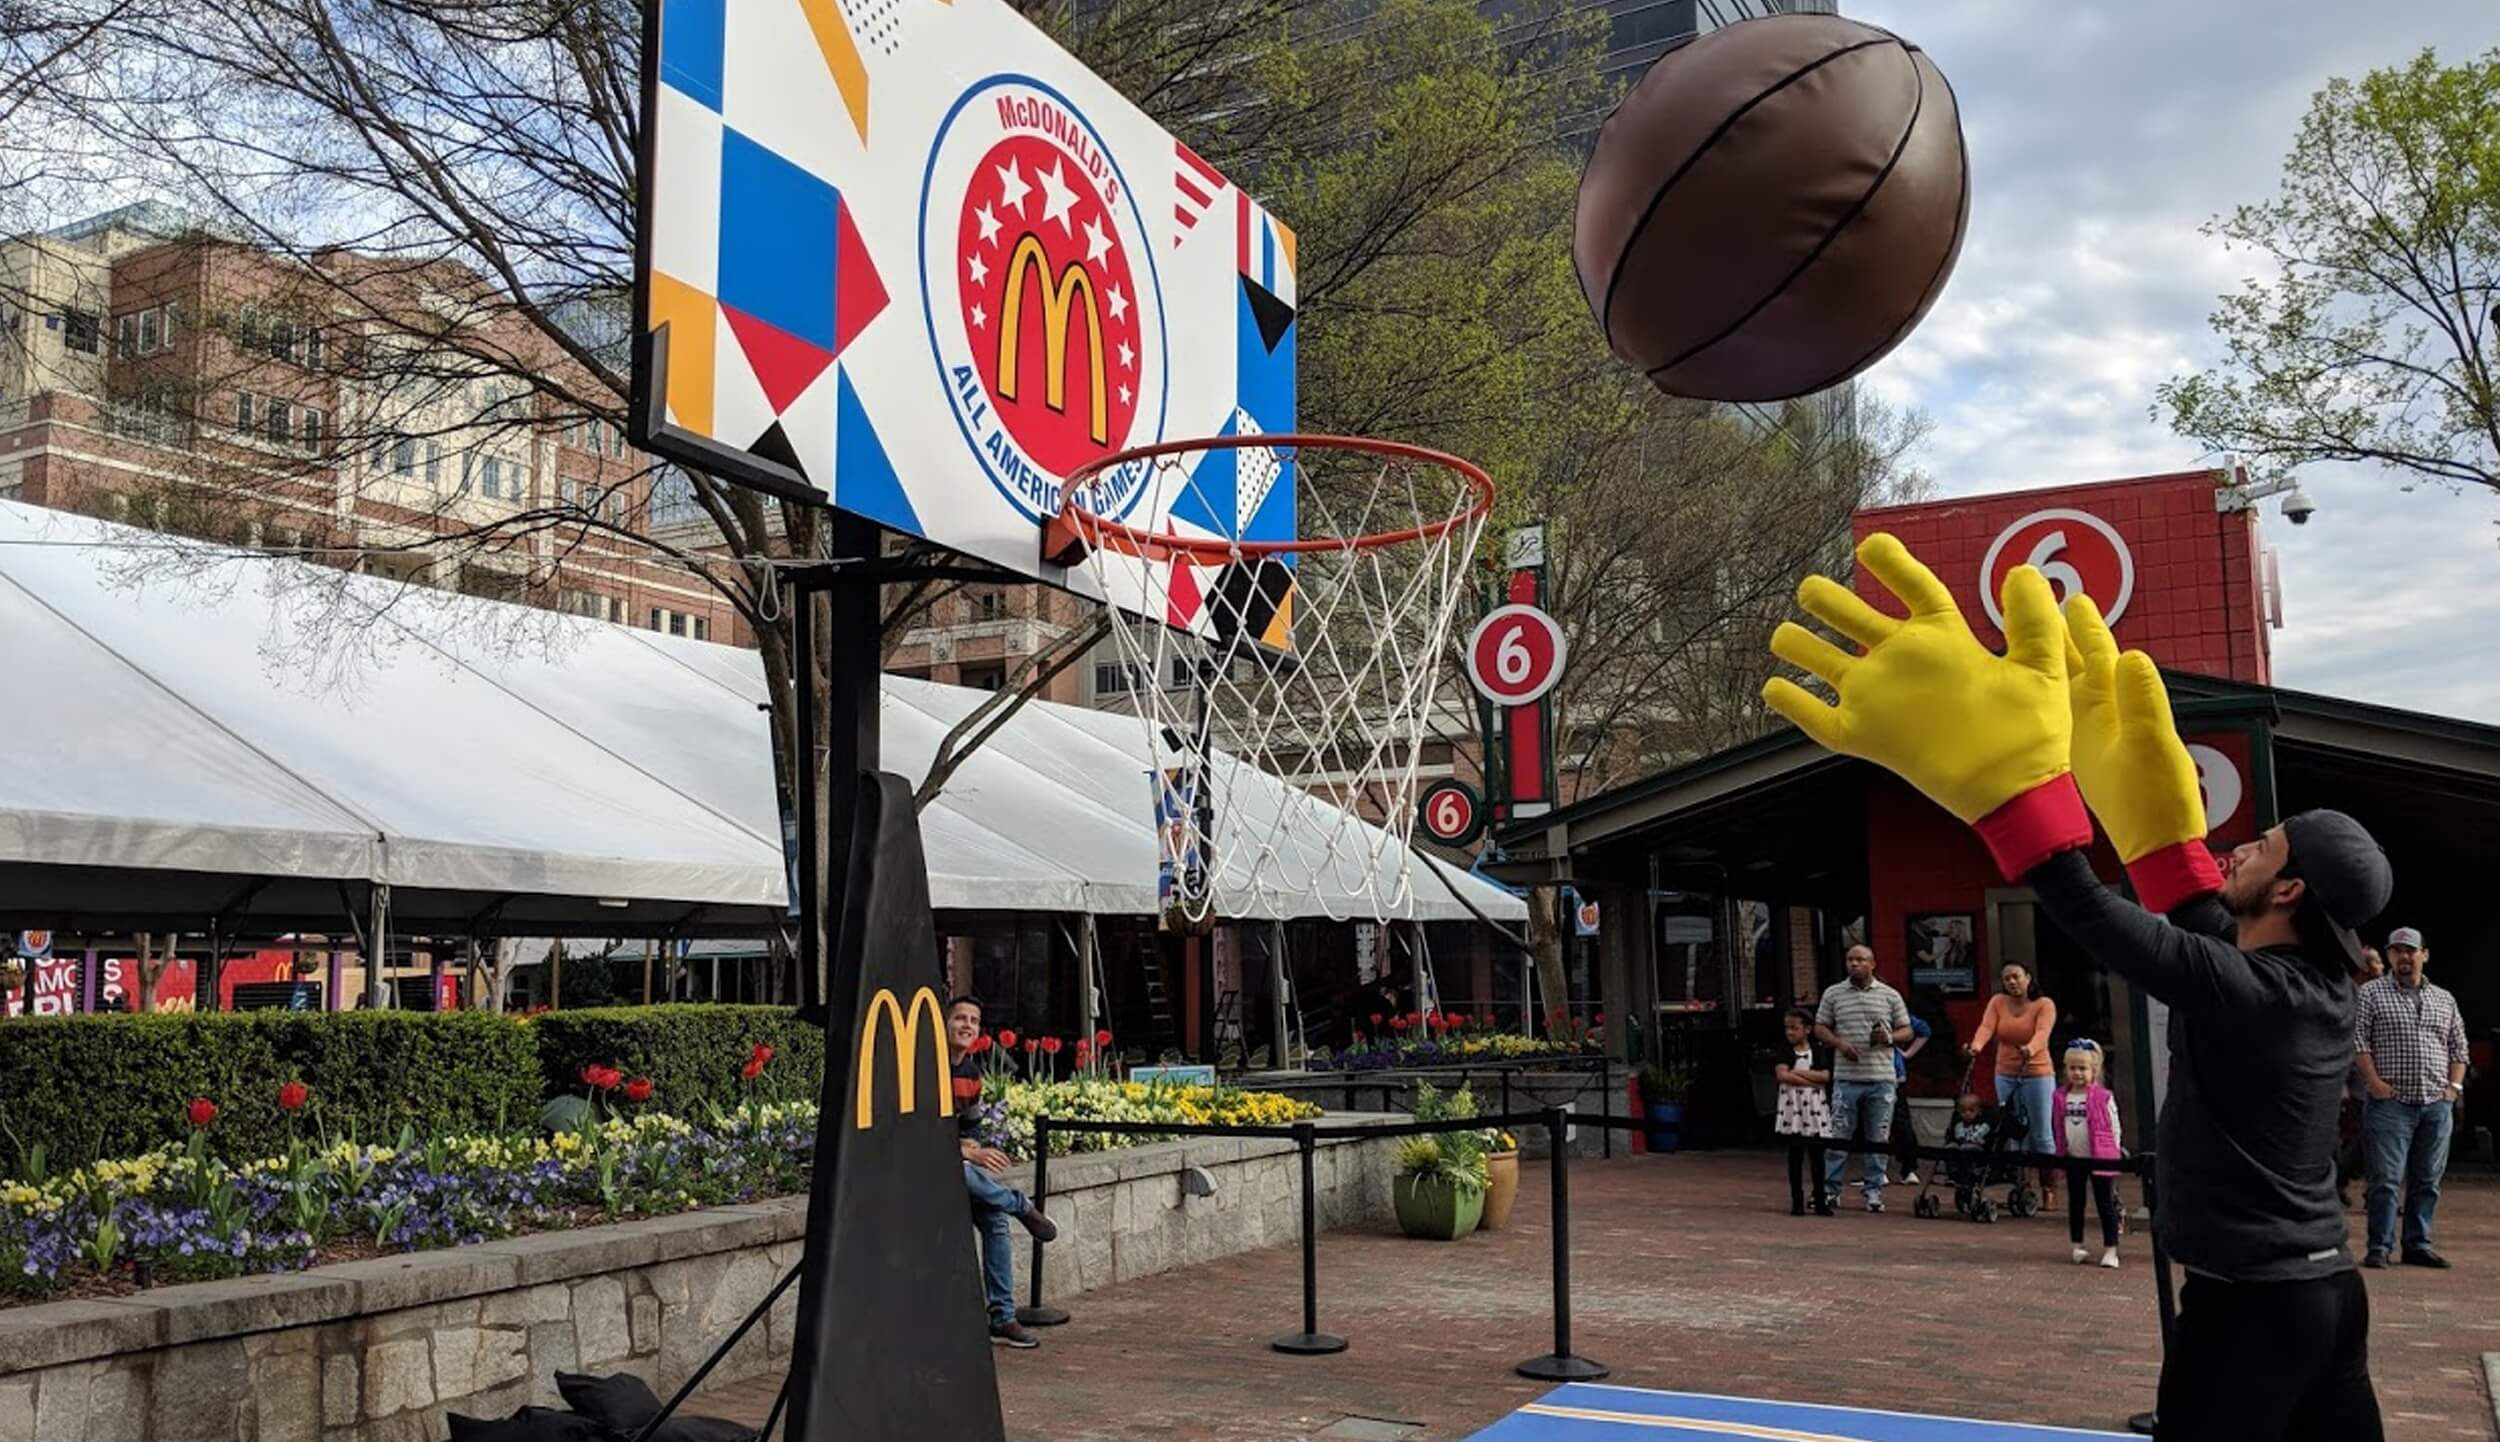 Atlanta Props™ Custom Event and Display Props - Giant Basketball and Hoop for McDonald's Event